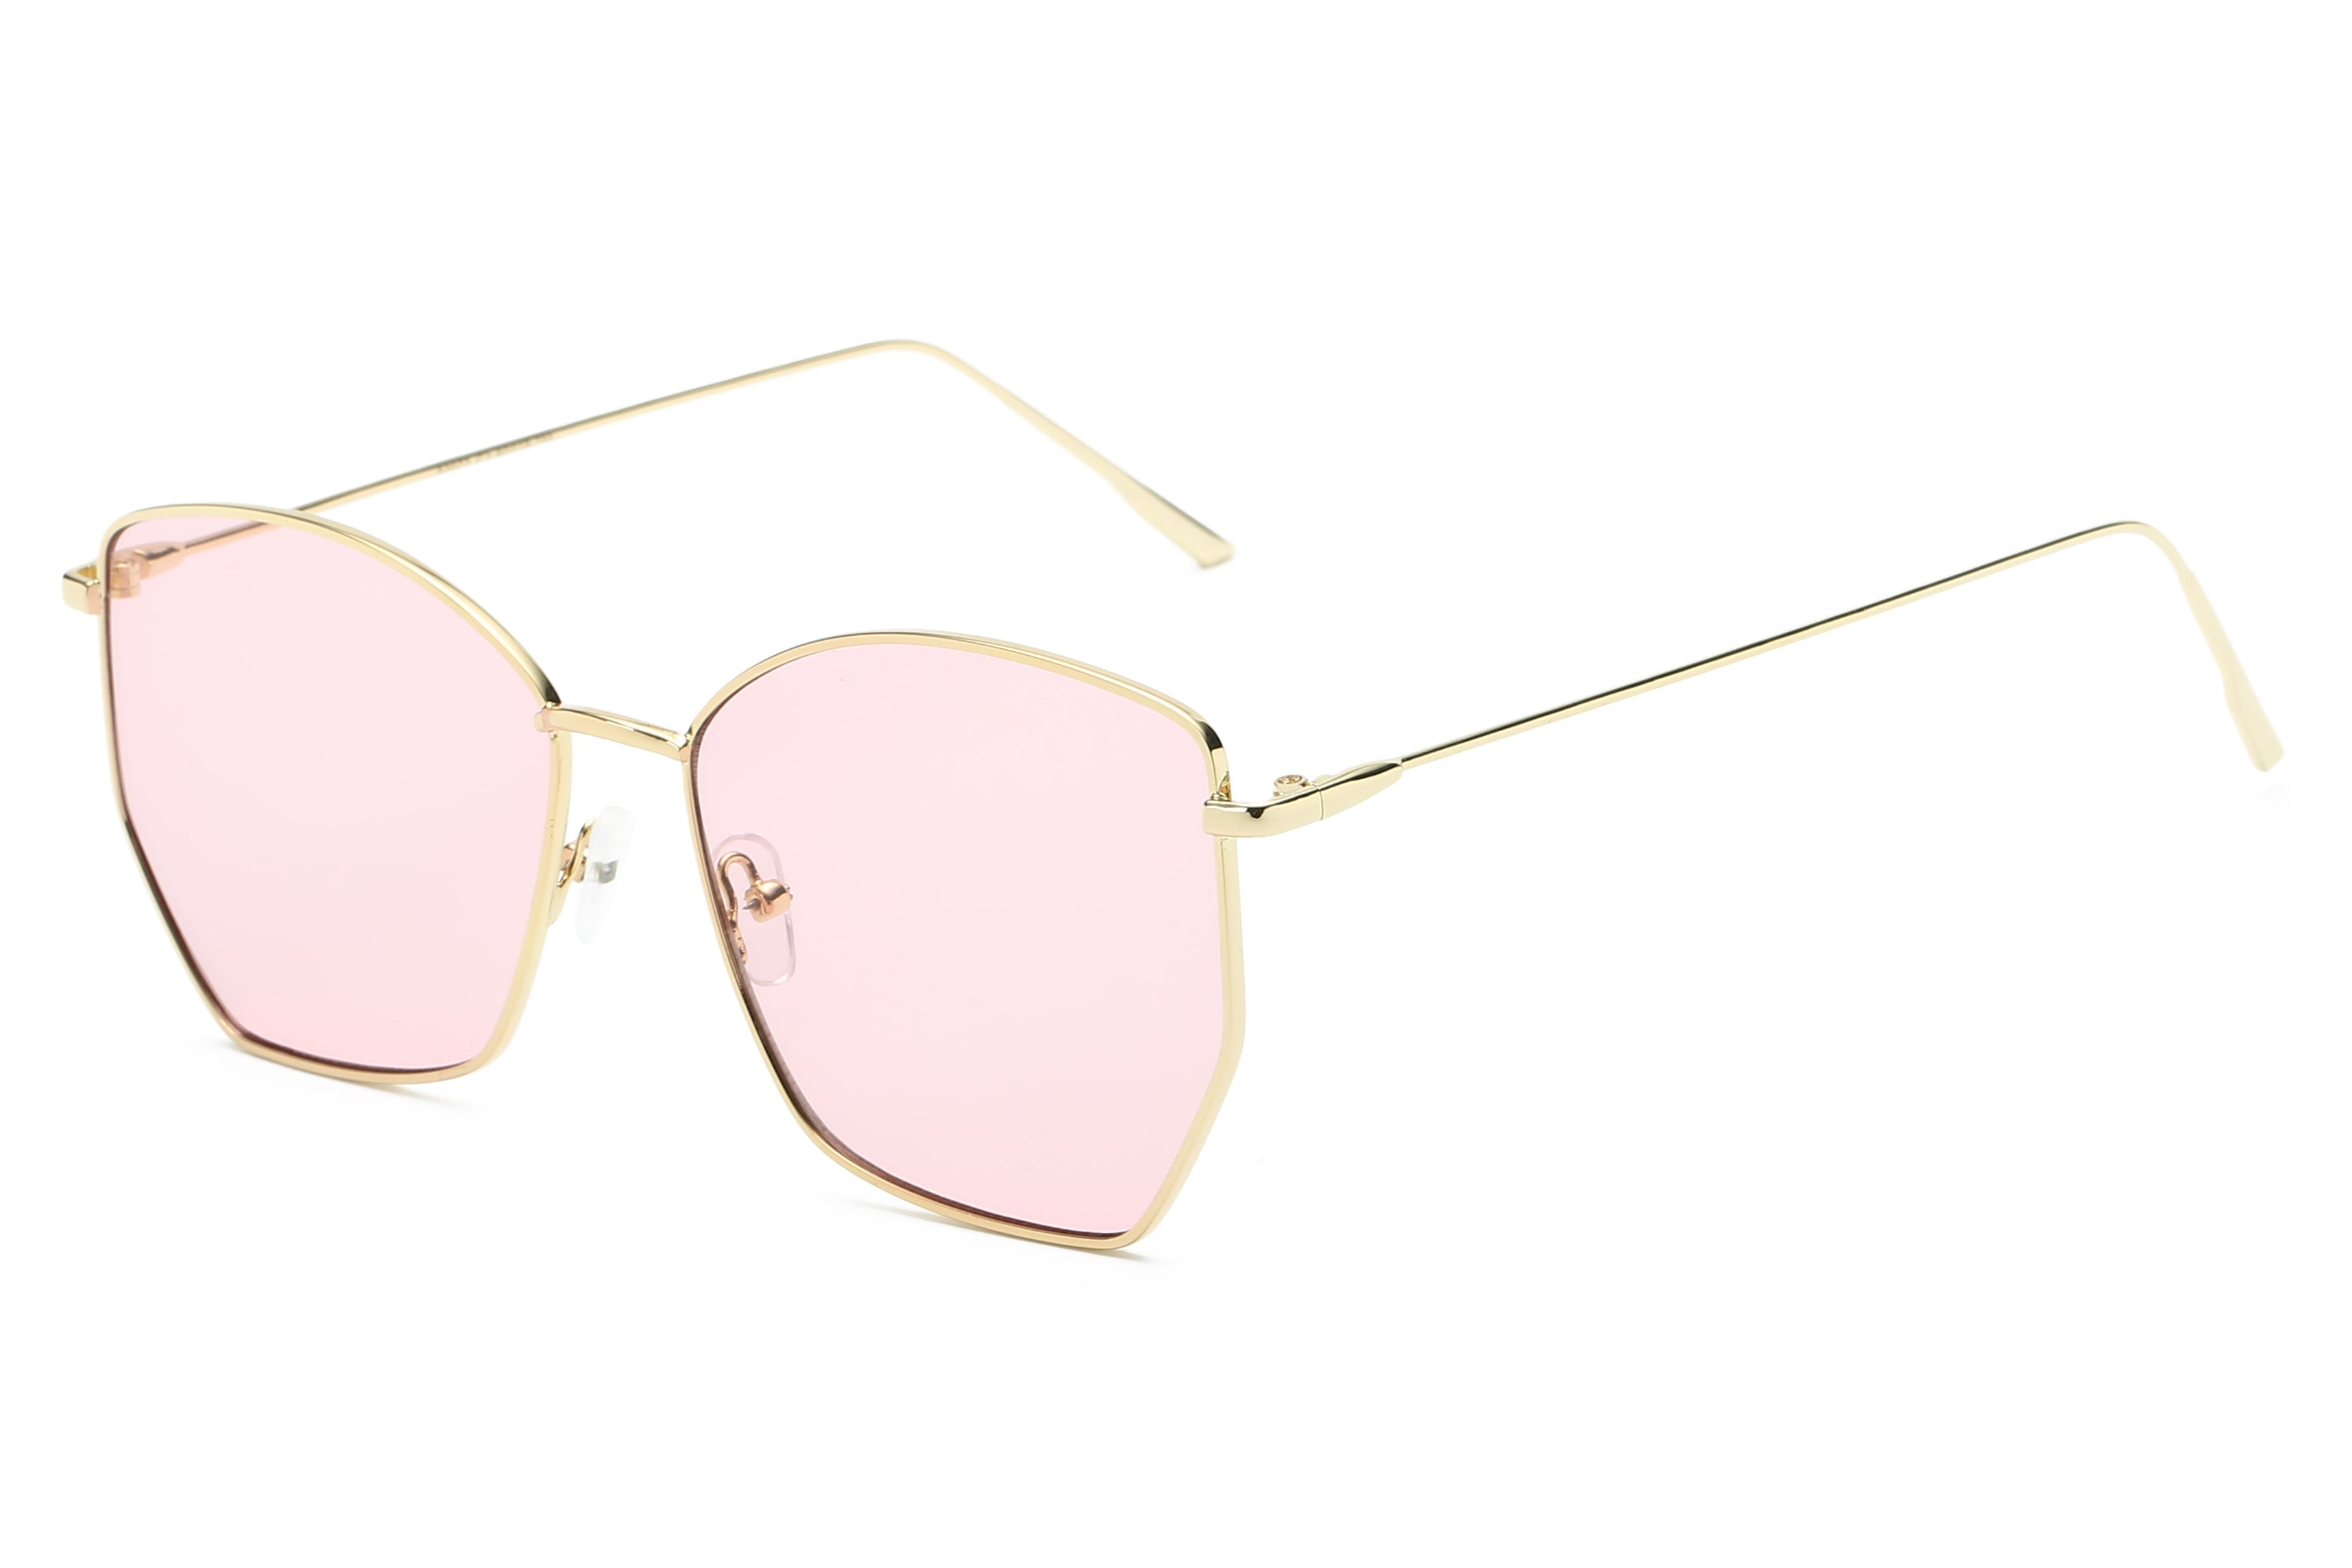 Women Modern Fashion Metal Geometric Square Oversized UV400 Protection Sunglasses - Pink